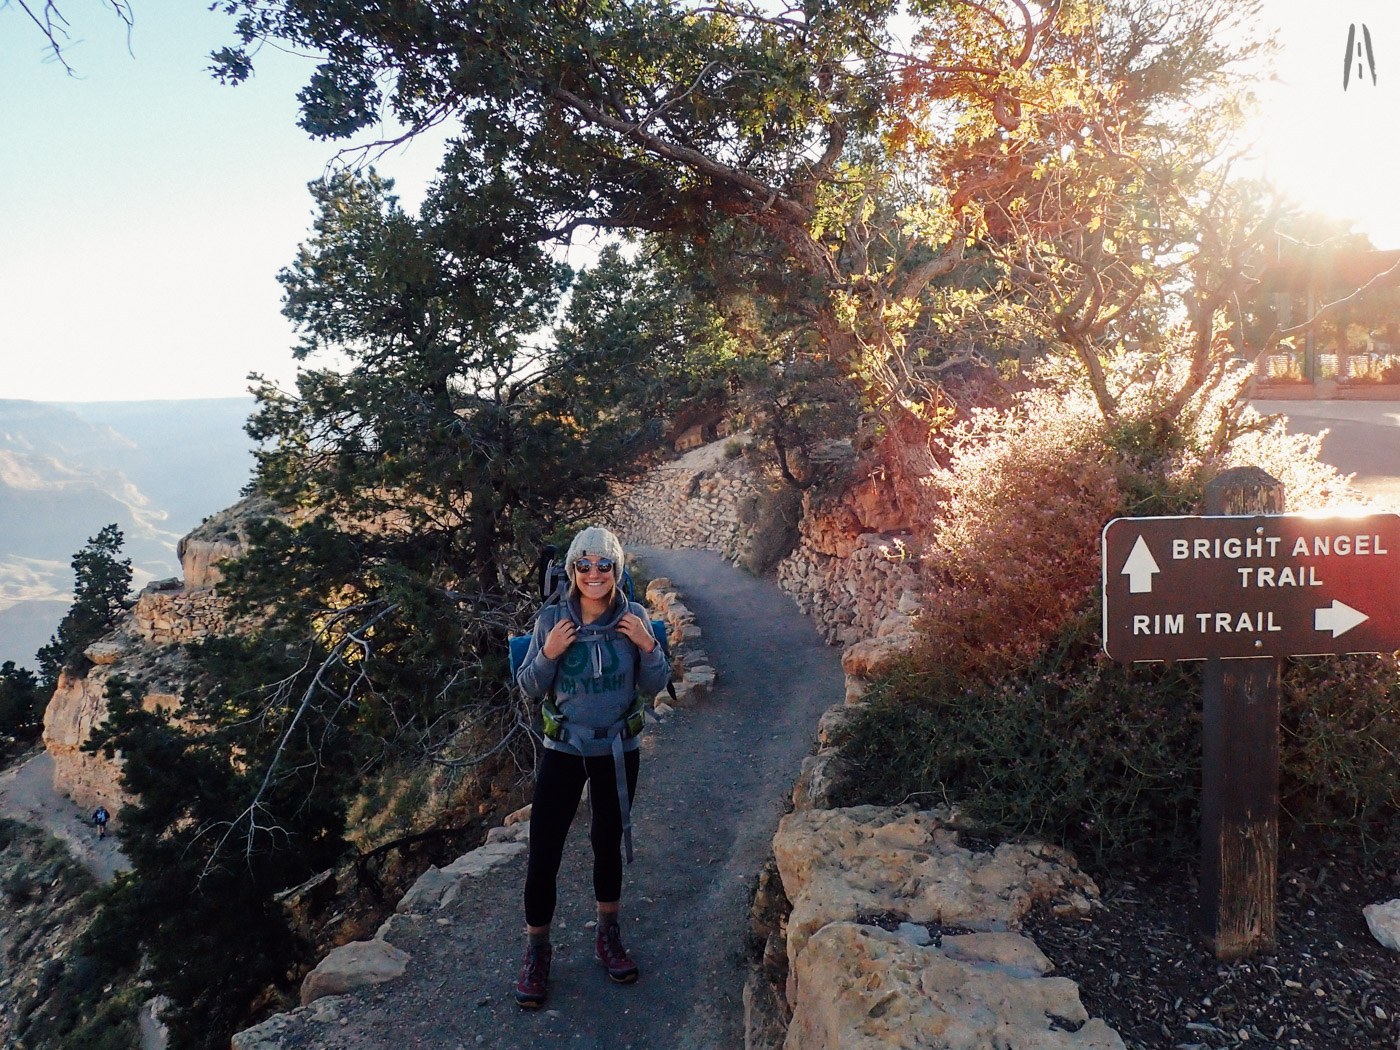 Top of Bright Angel Trail, Grand Canyon.